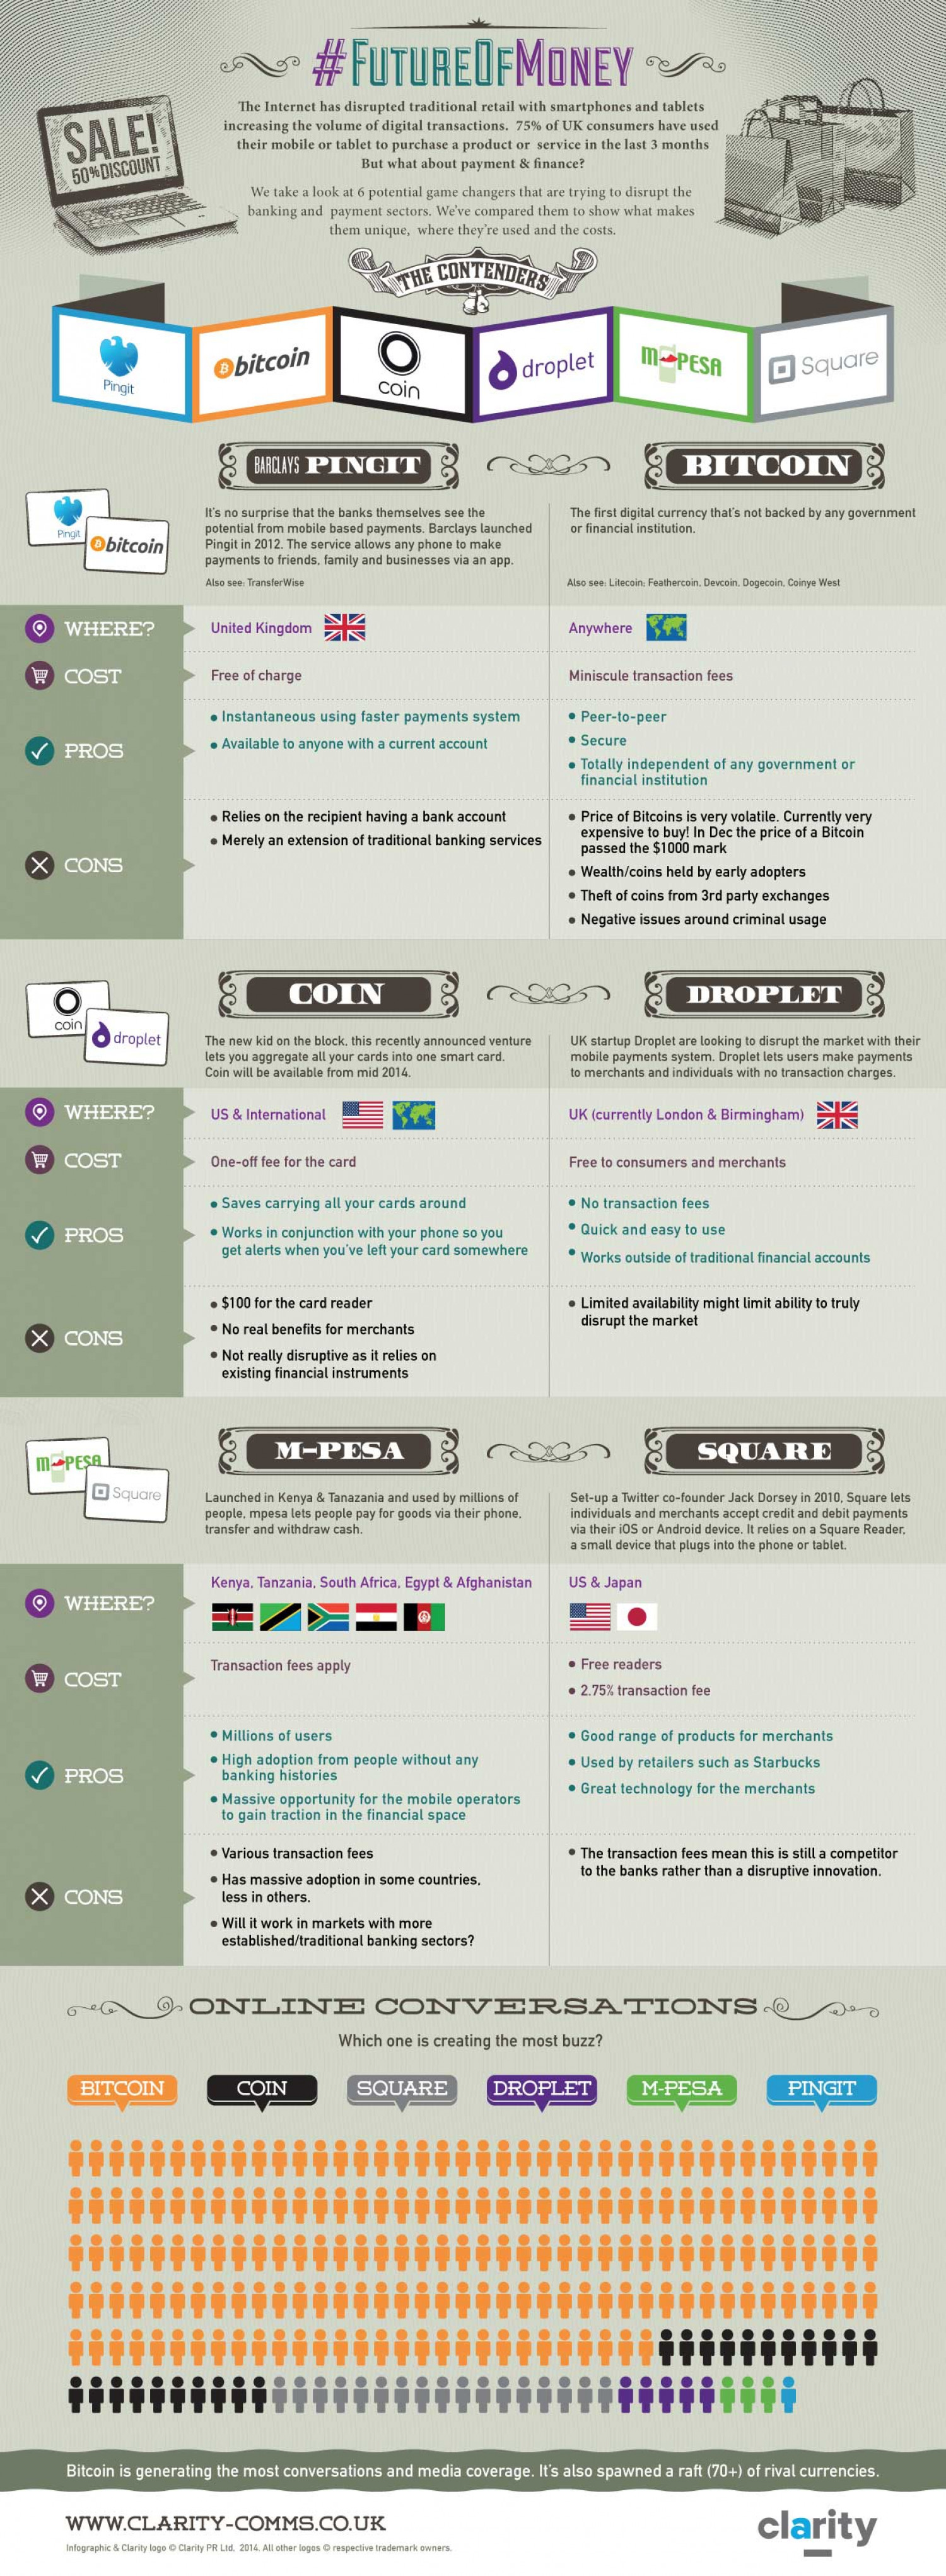 Clarity Comms #FutureOfMoney Infographic Infographic